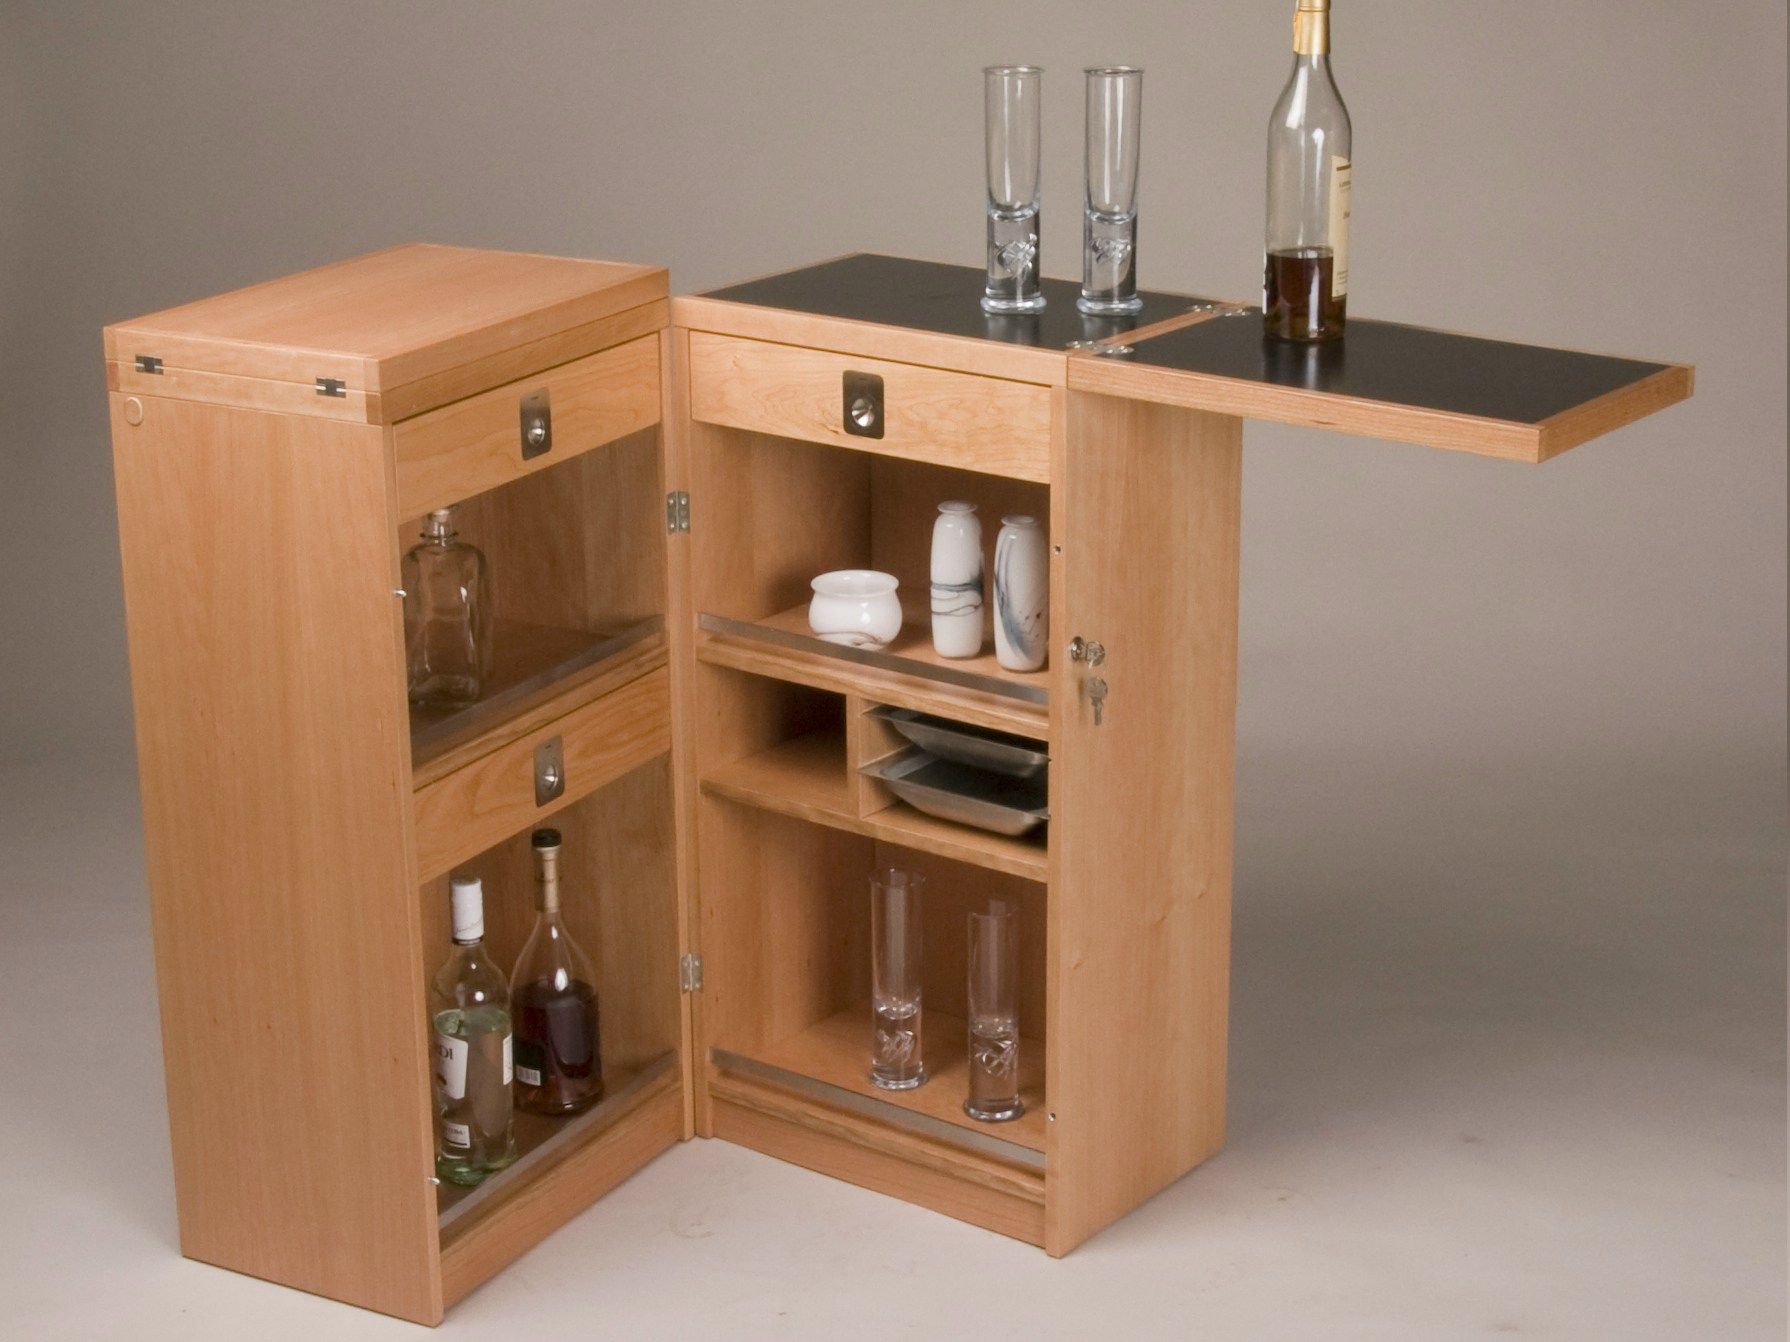 barschrank aus holz captain 39 s bar by dyrlund. Black Bedroom Furniture Sets. Home Design Ideas